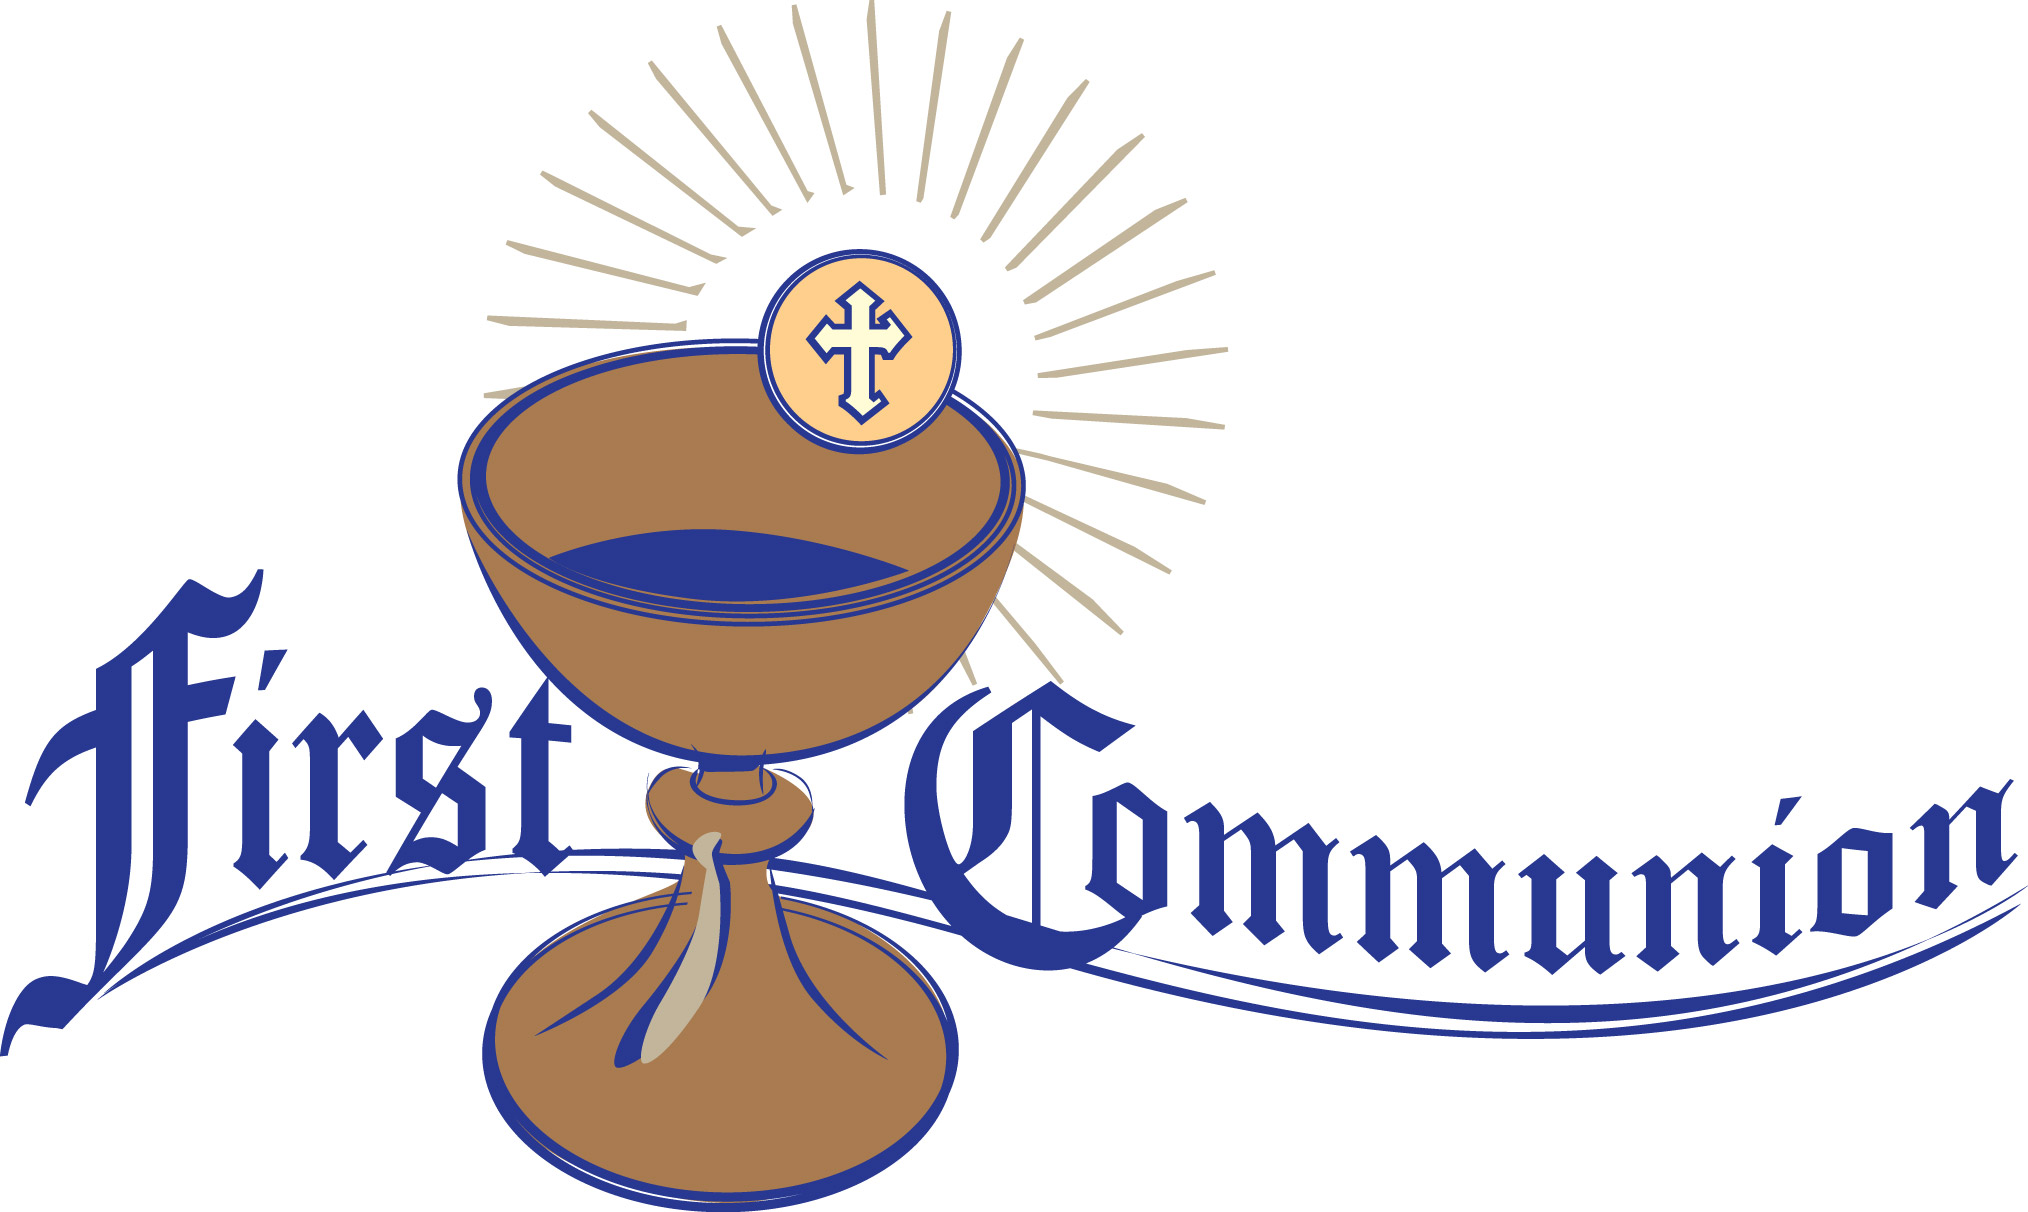 First Communion Clipart.